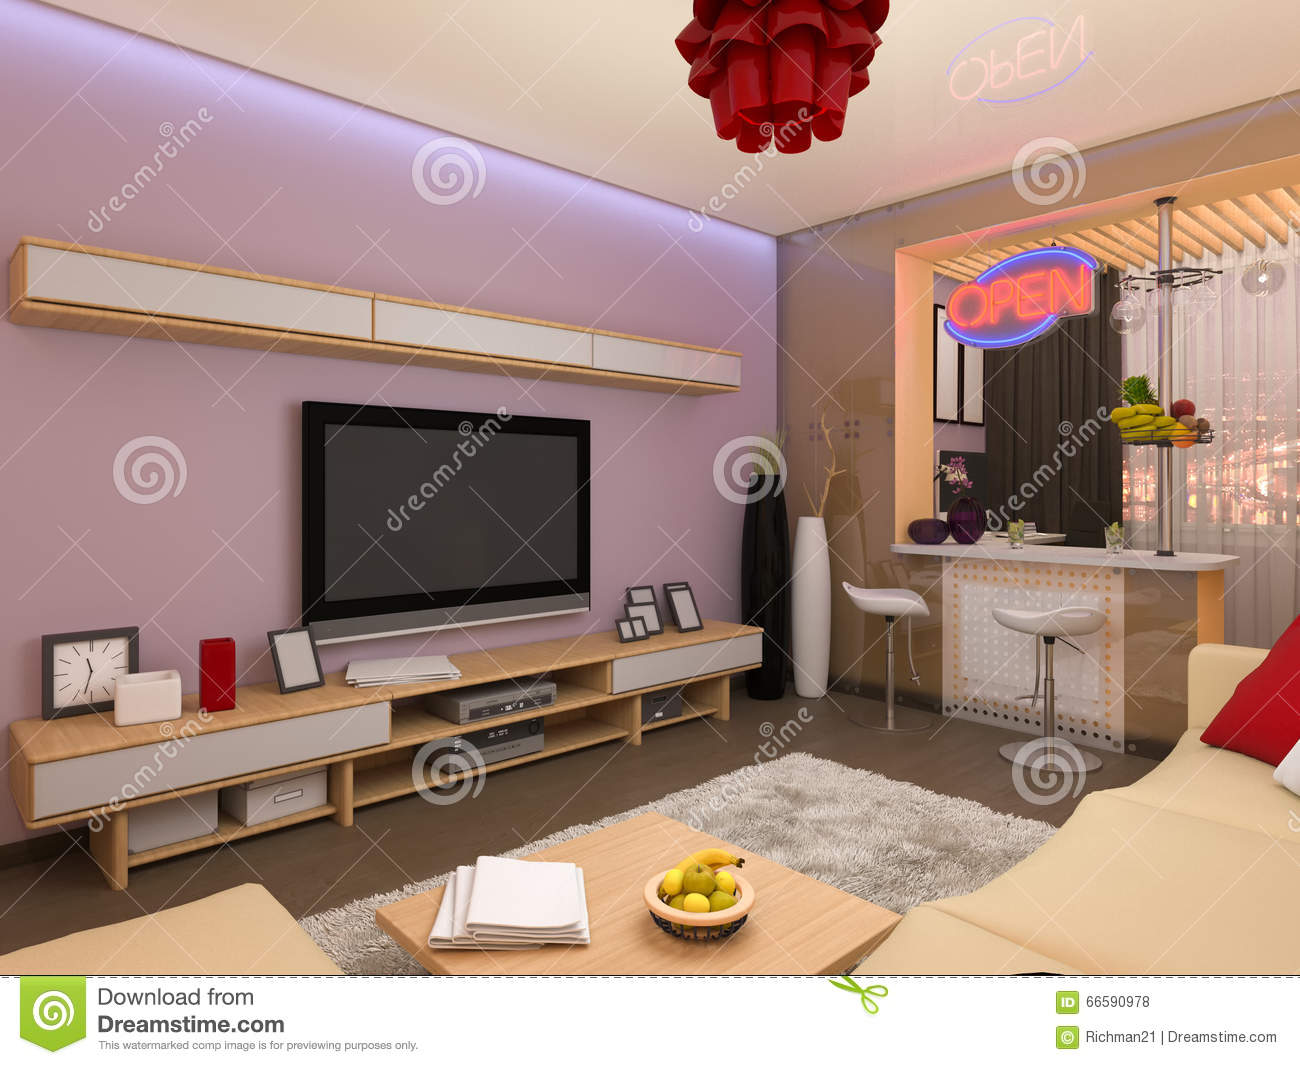 3d render of the interior design of the living room in a Interior sitting room